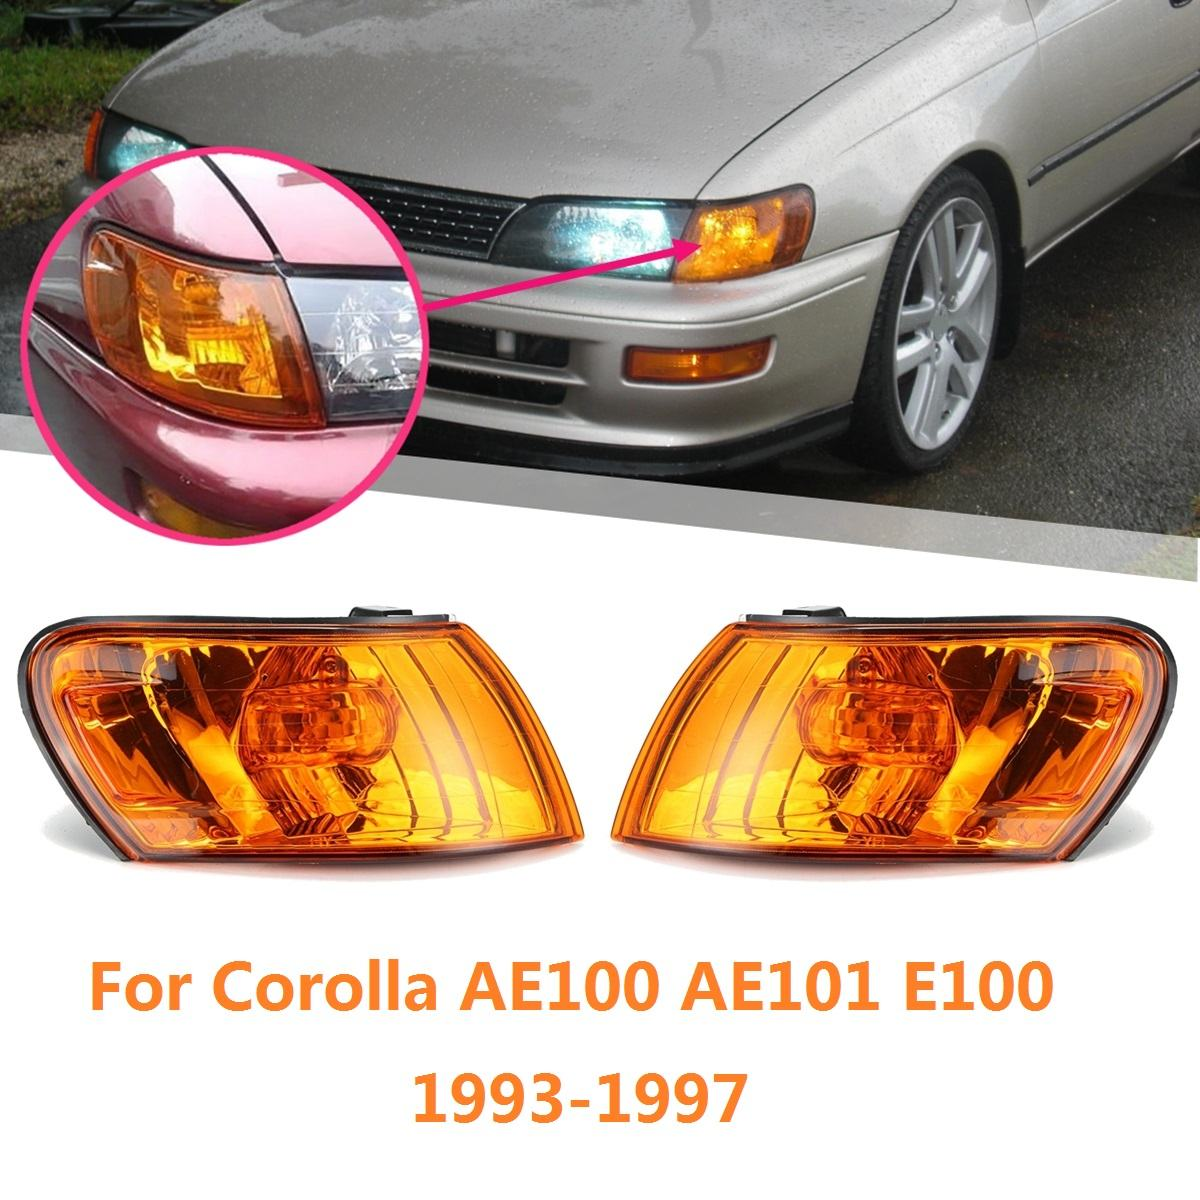 Pair Parking Corner Light Cover Amber Lens for Toyota Corolla AE100 AE101 E100 1993 1994 1995 1996 1997 Signal Lamp  Accessories